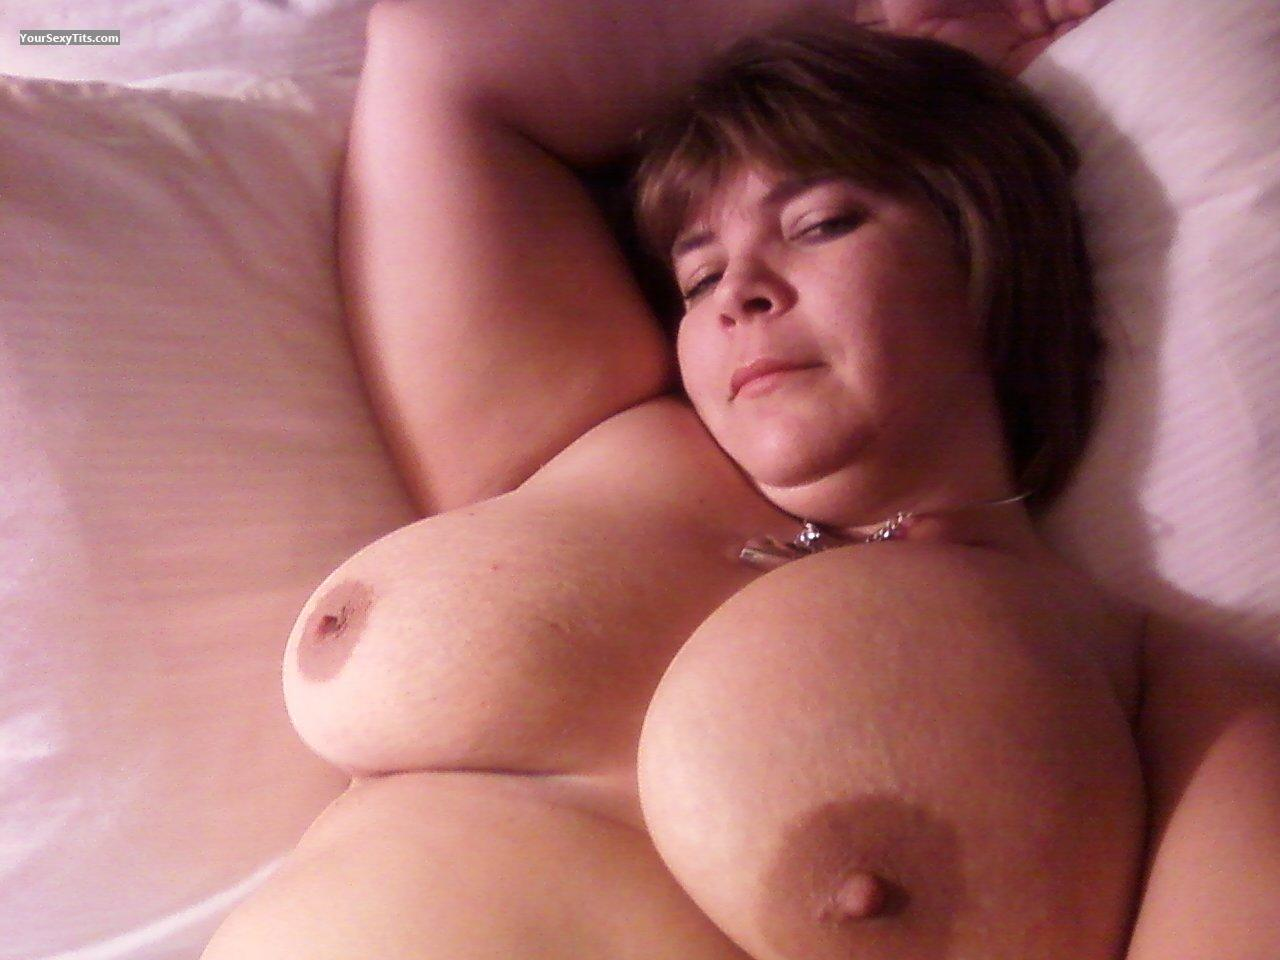 Tit Flash: My Big Tits (Selfie) - Topless Diane from United States